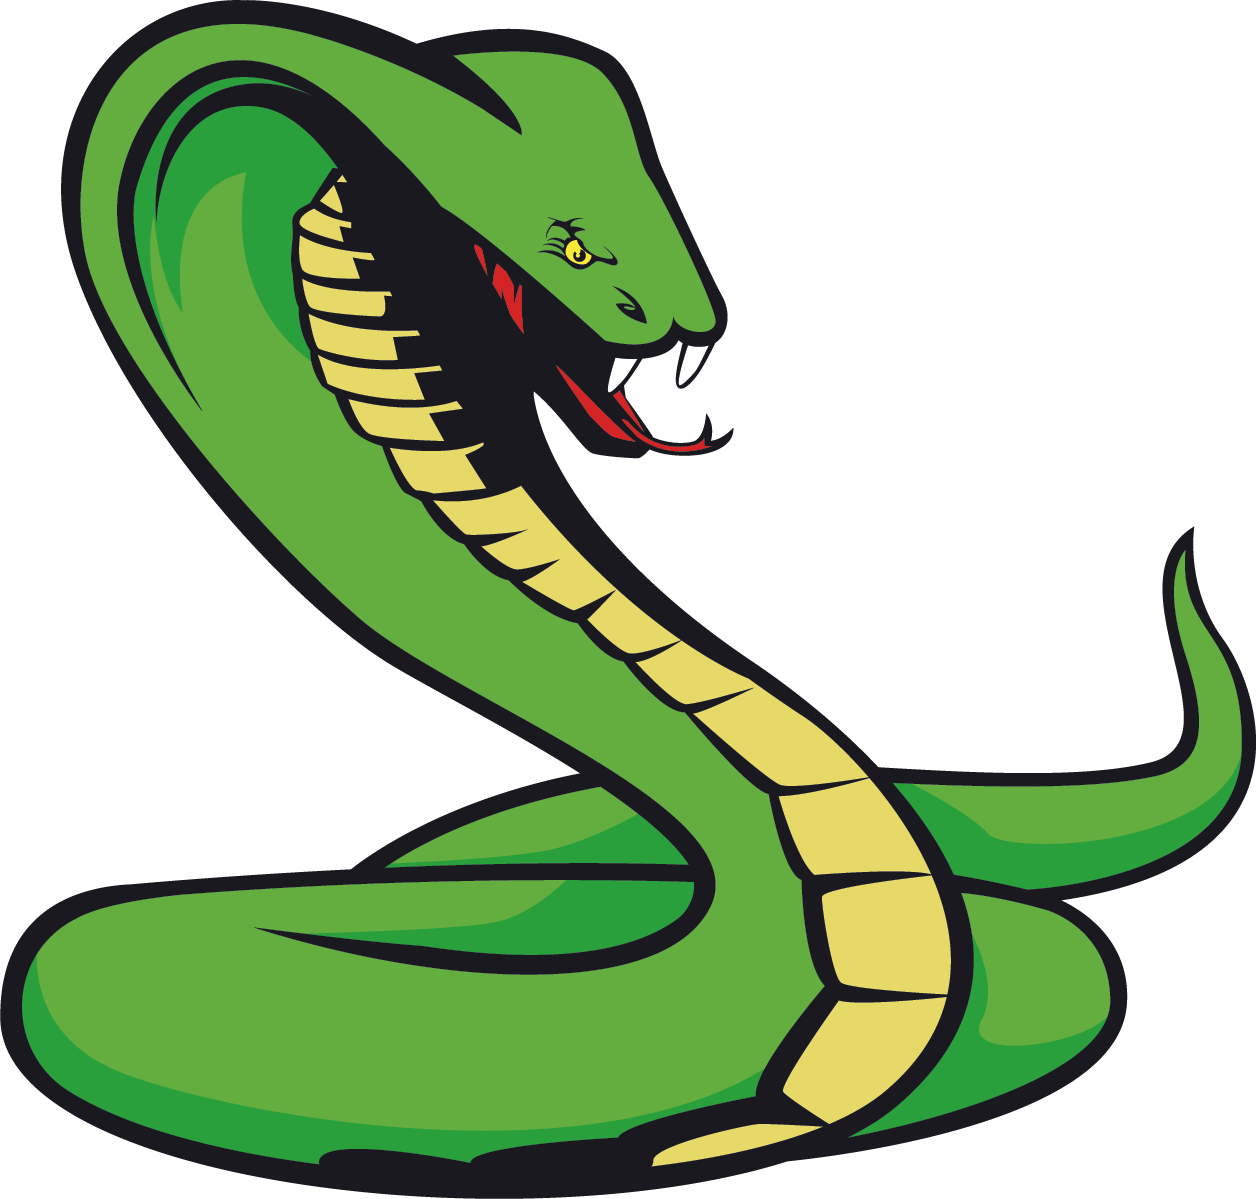 Tattoo png transparent quality. Snake clipart boy